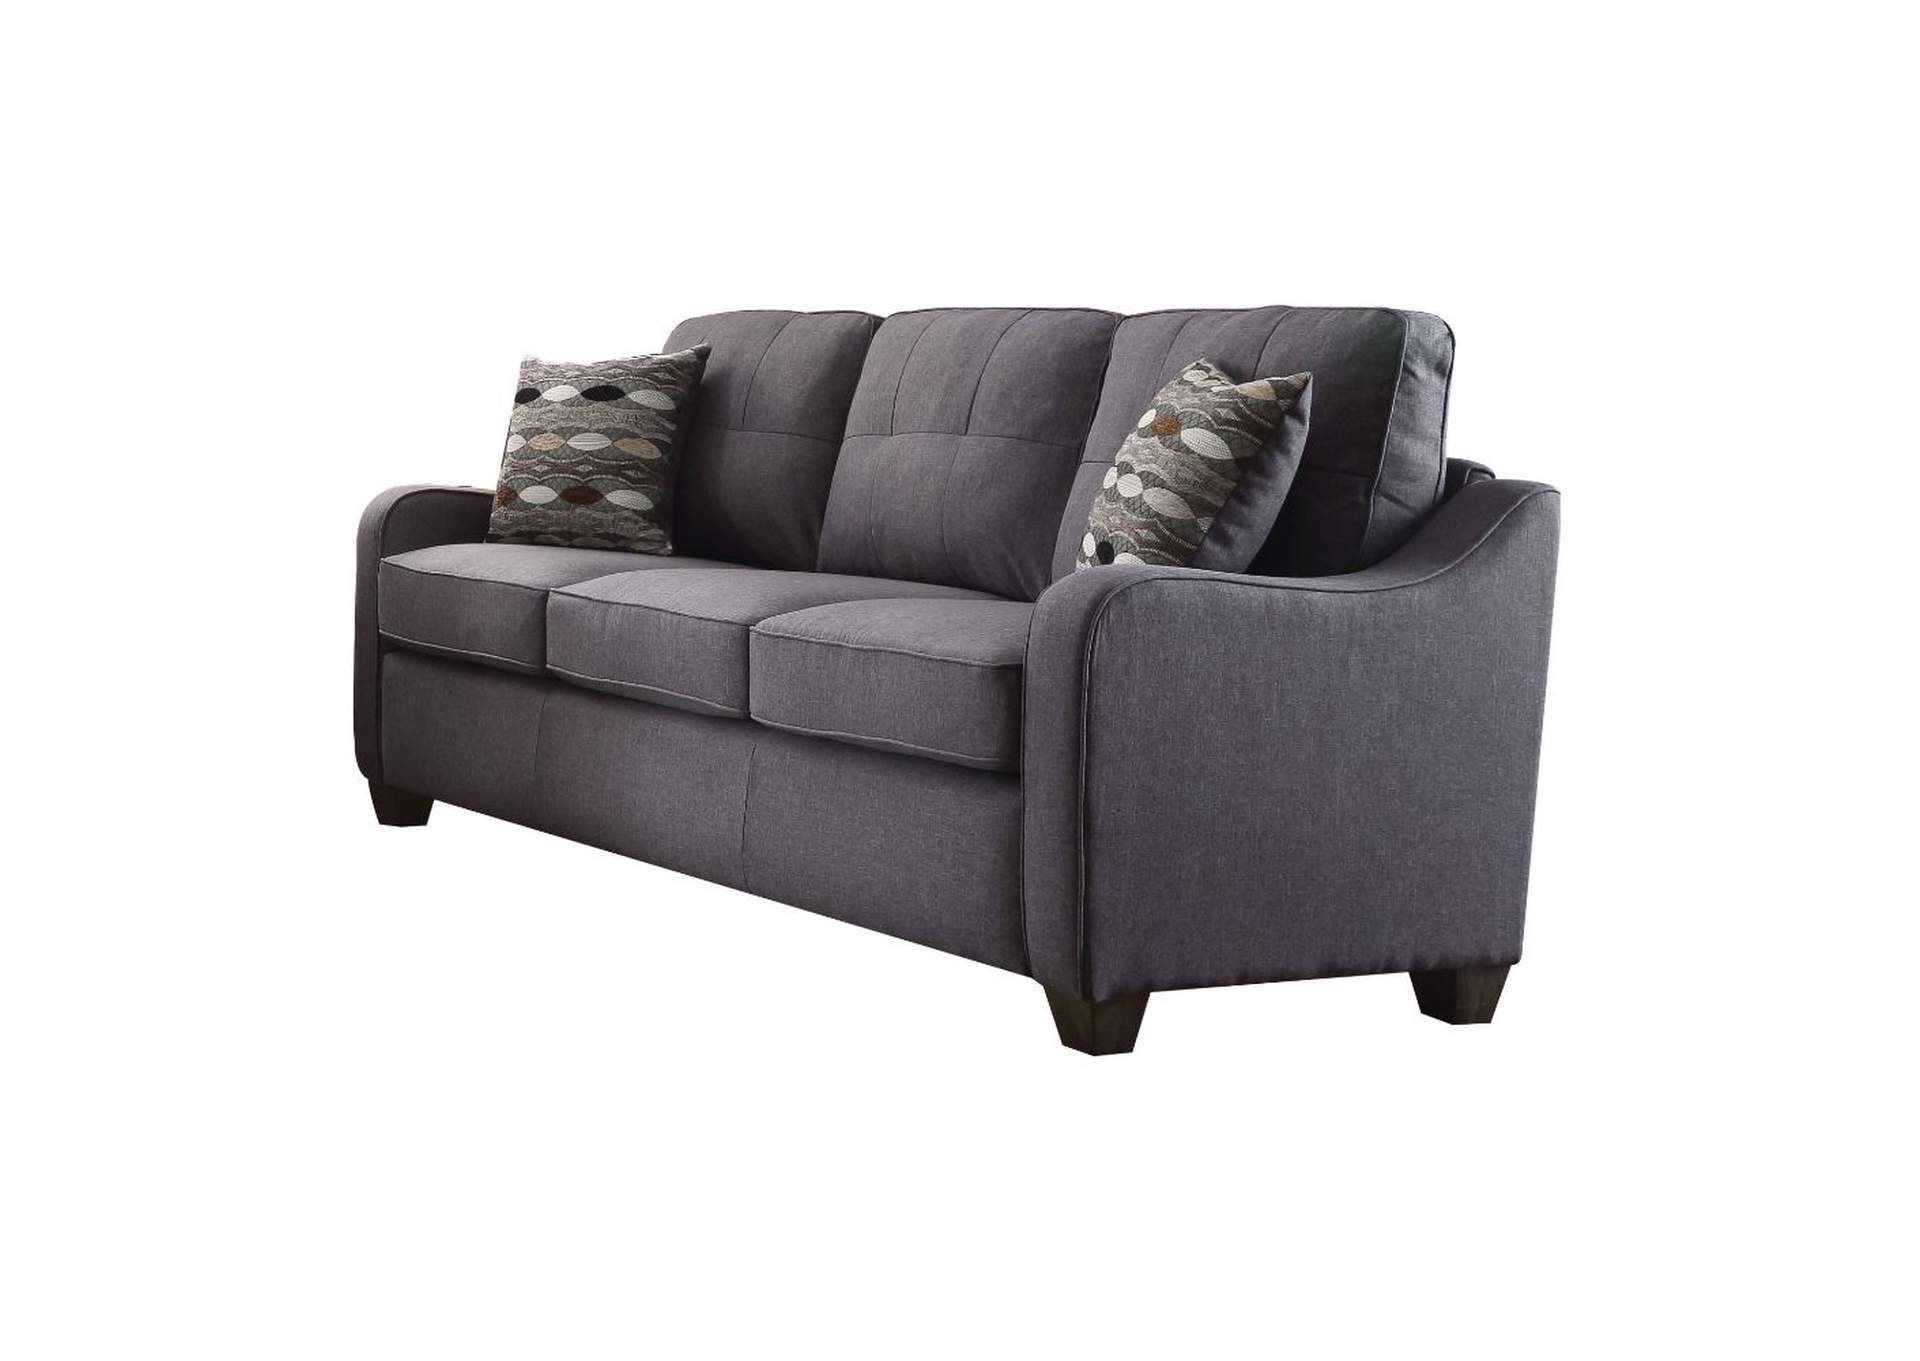 Cleavon II Gray Linen Sofa,Acme